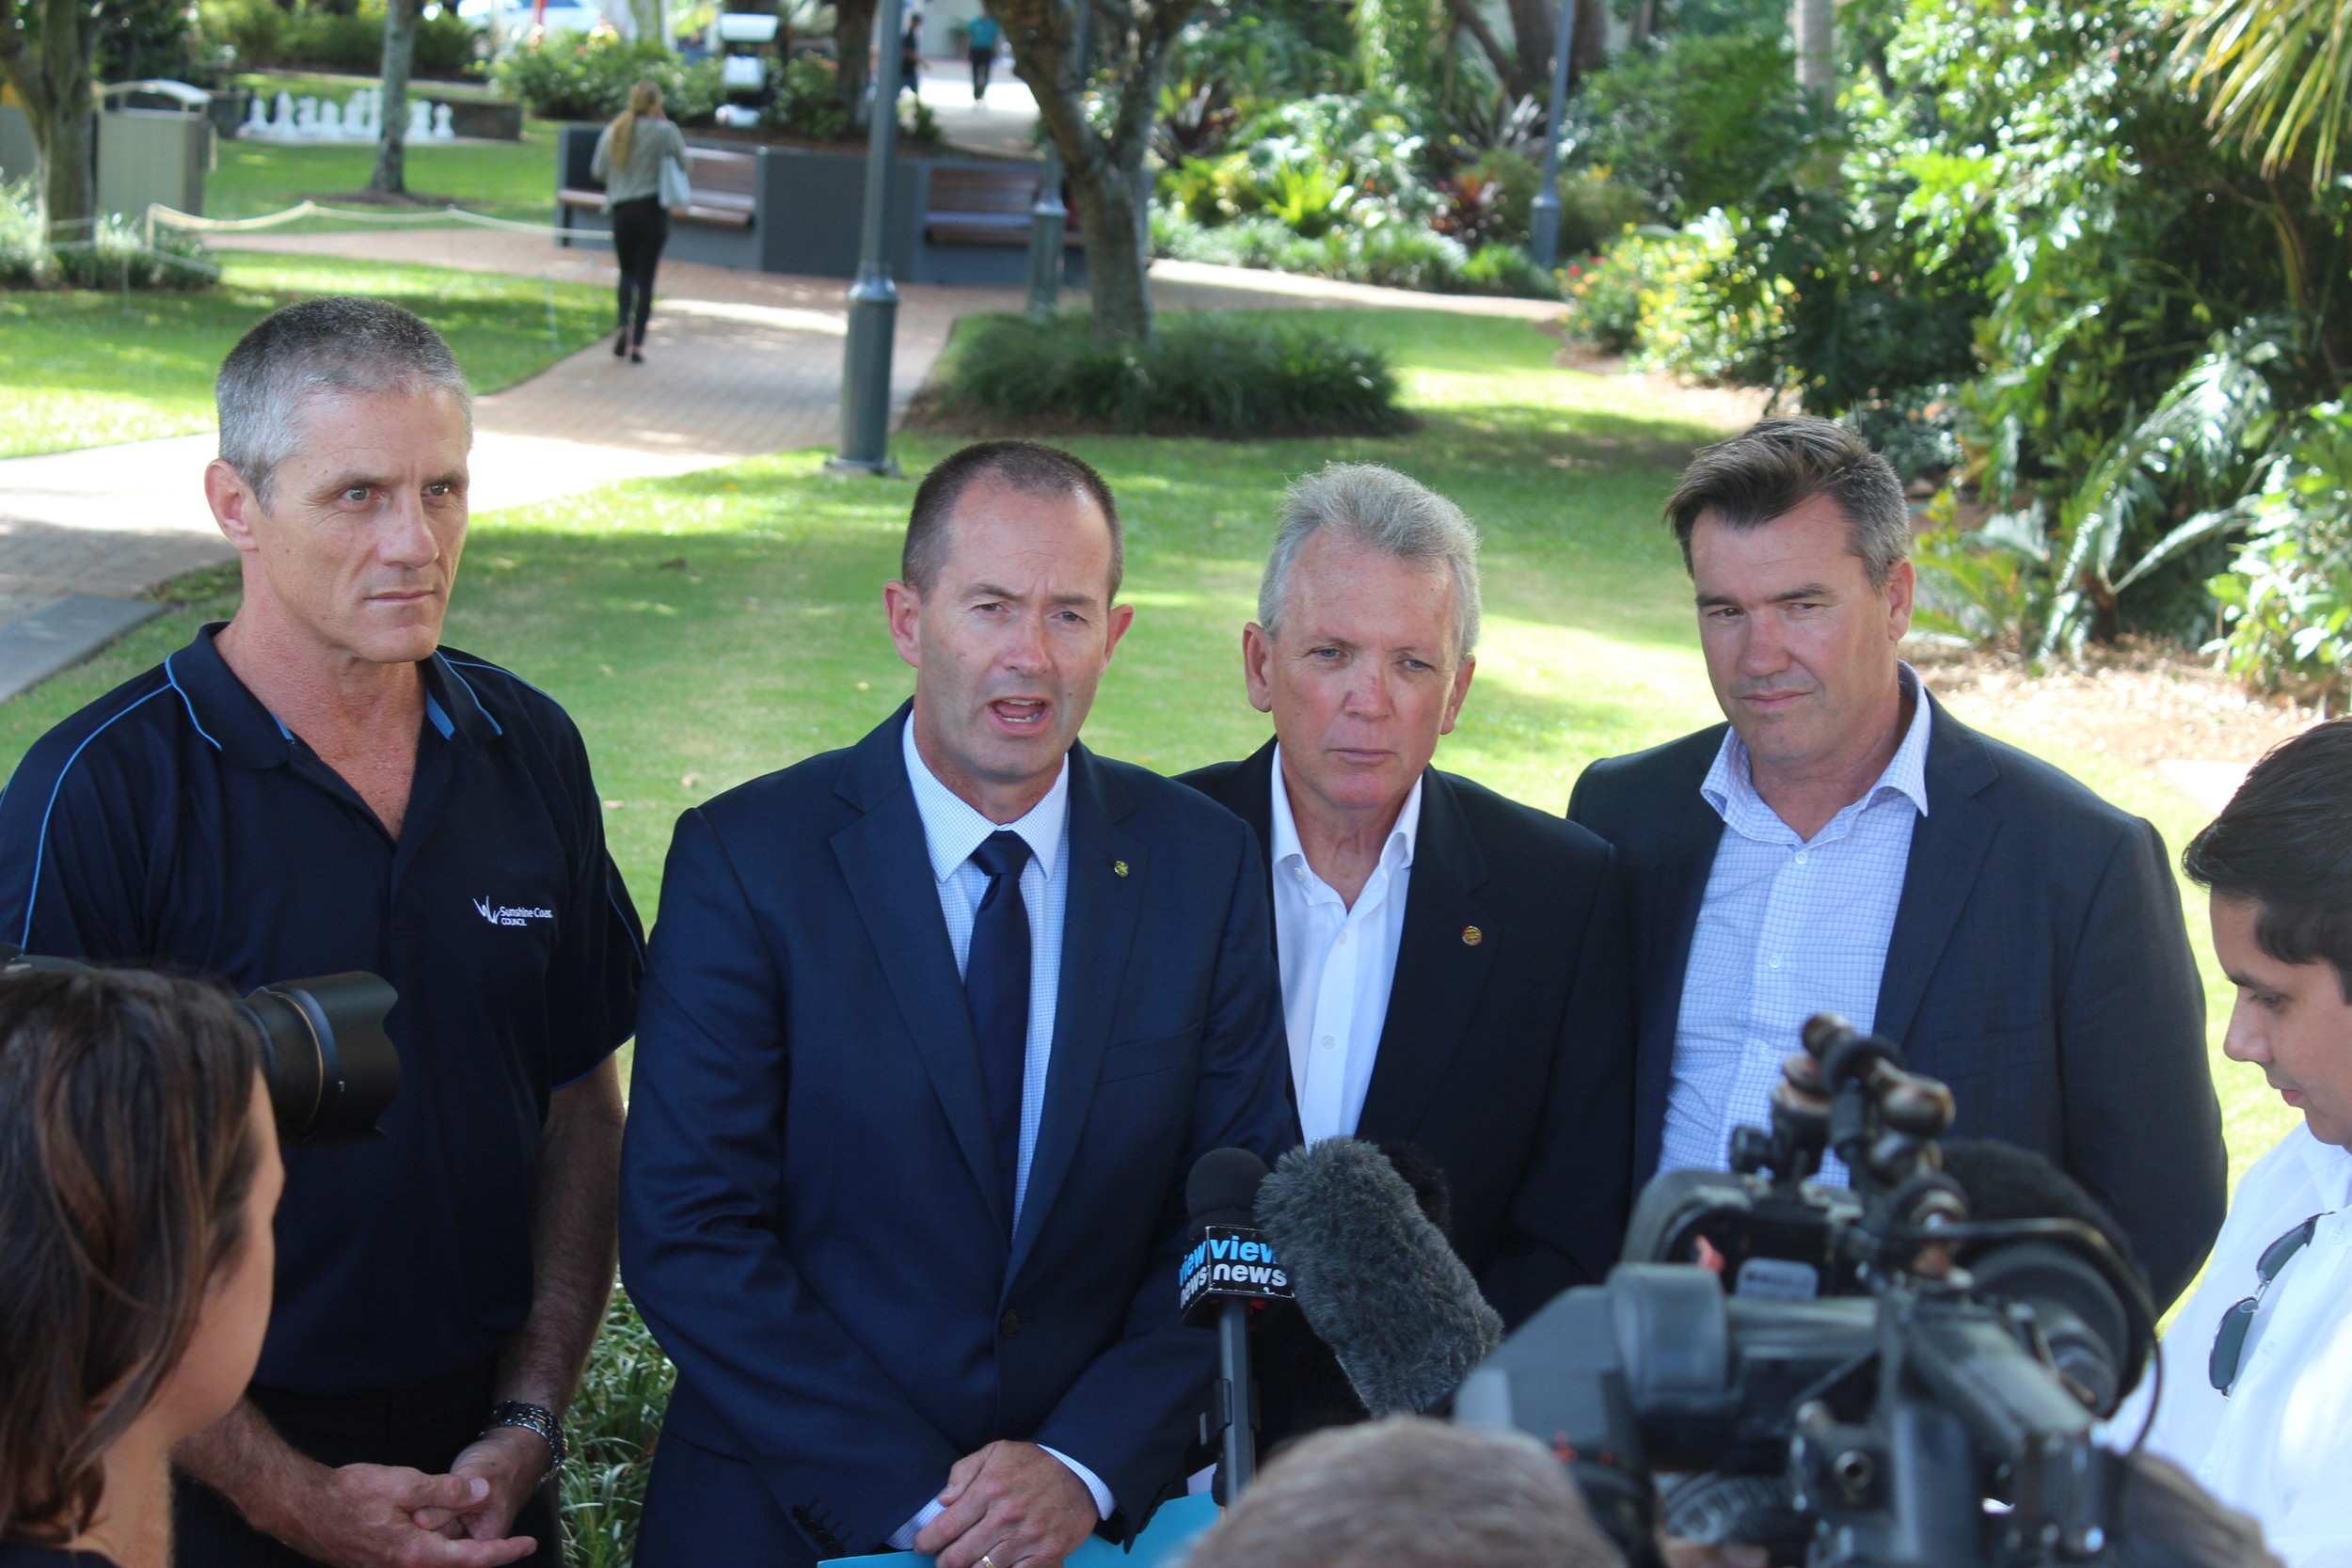 Cr Tim Dwyer joined Federal Member for Fisher Andrew Wallace, State Member for Caloundra Mark McArdle and Caloundra Chamber of Commerce president Michael Shadforth during the May 2017 CCTV funding announcement.